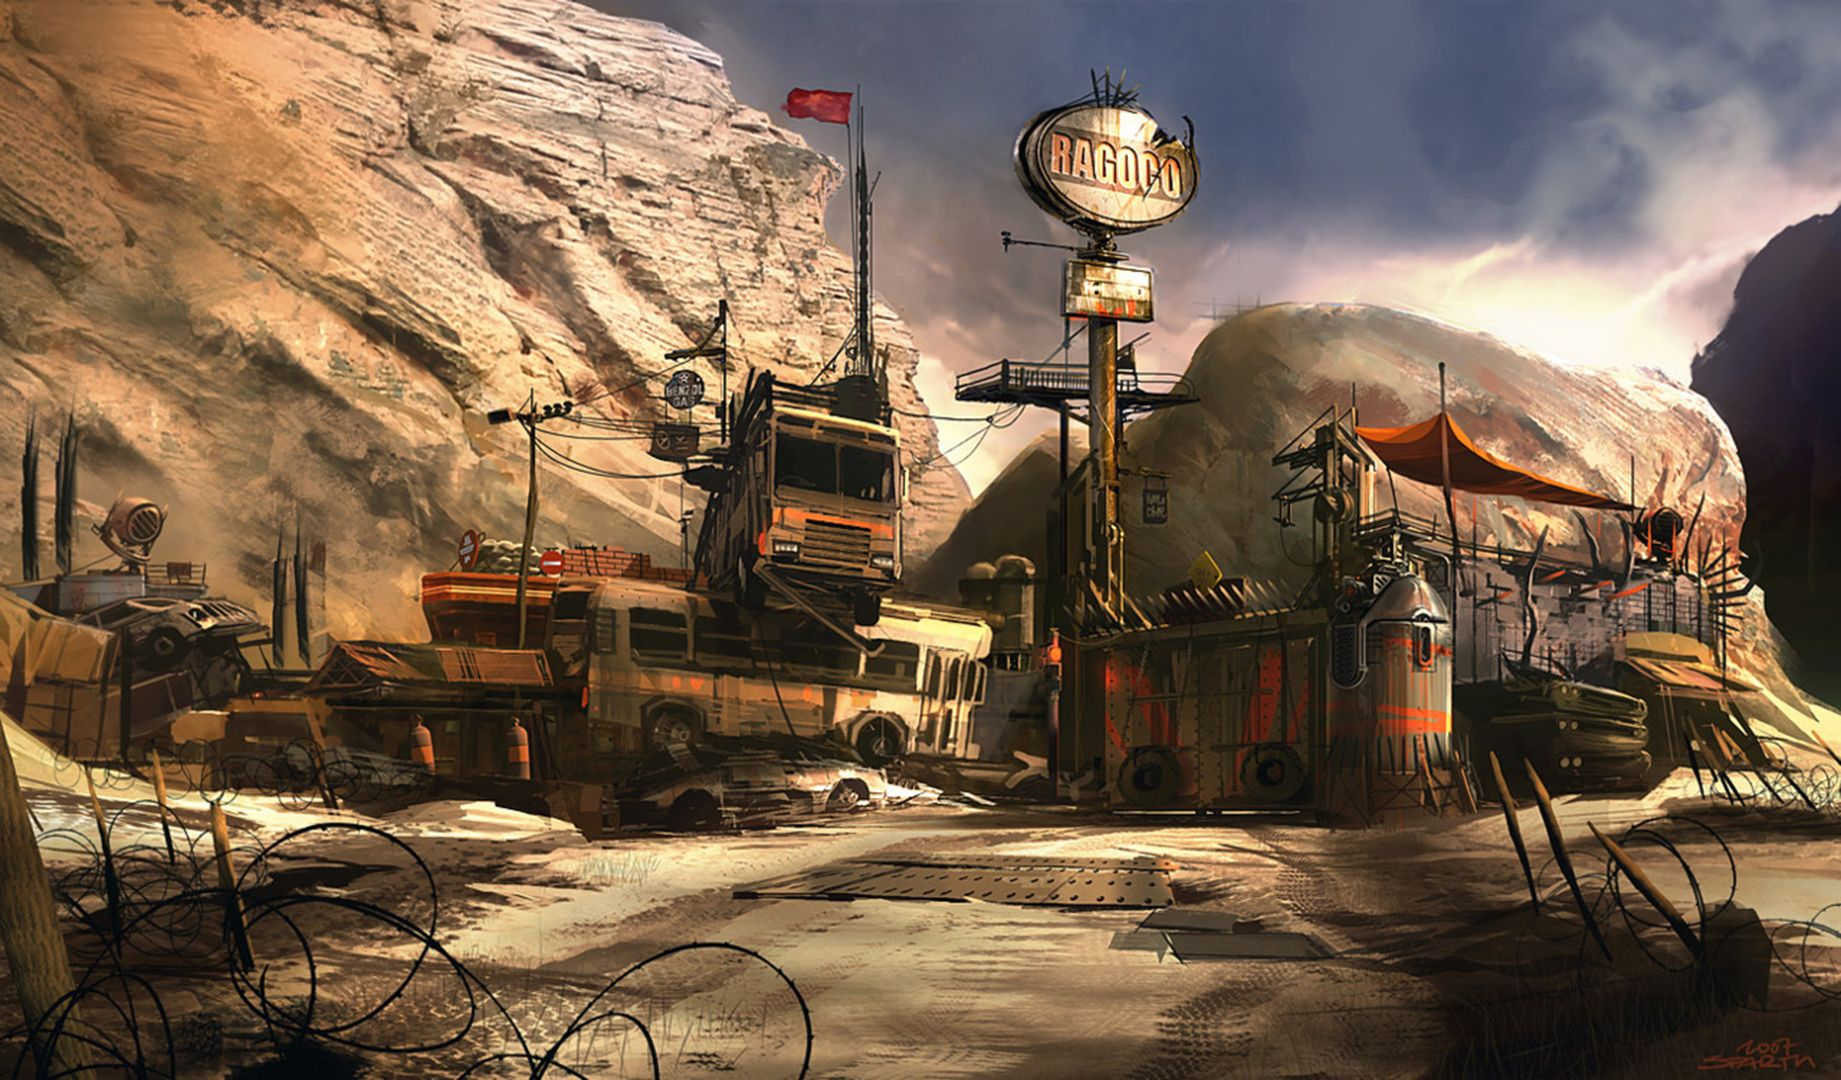 Sparth Nicolas Bouvier Rage outpost | Science Fiction Art in